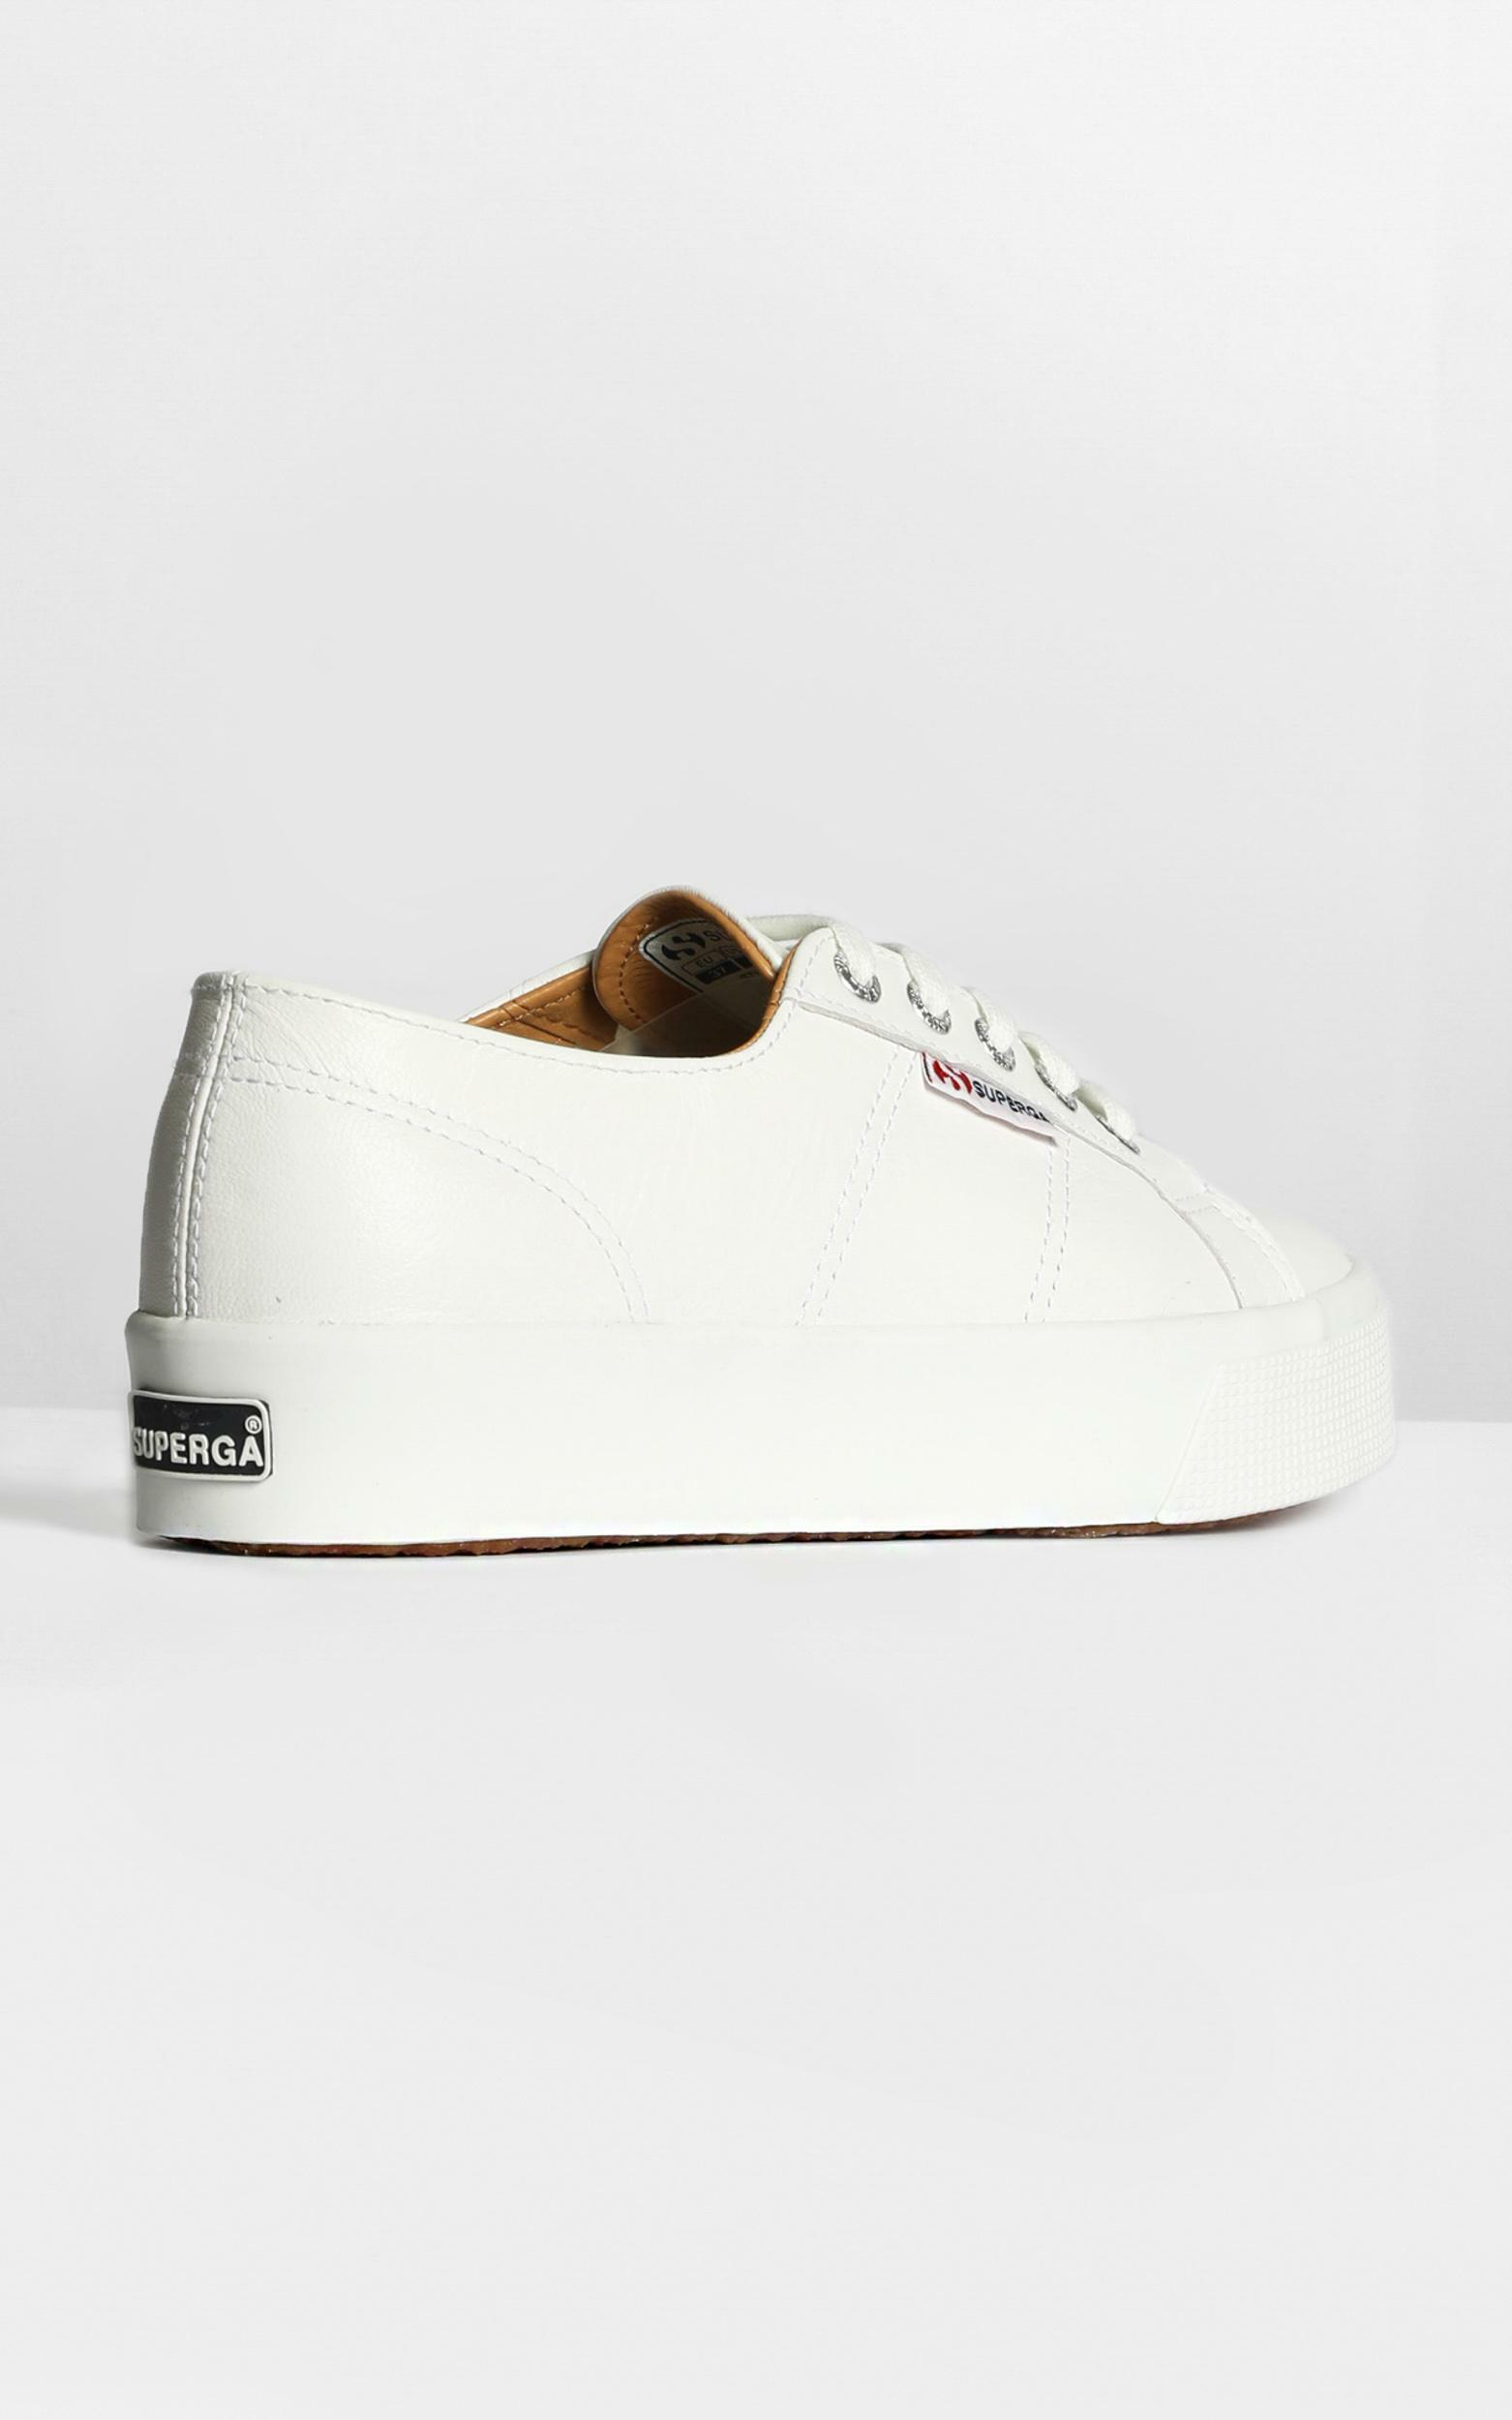 Superga - 2730 Nappaleau Sneakers in white leather - 6, WHT1, hi-res image number null